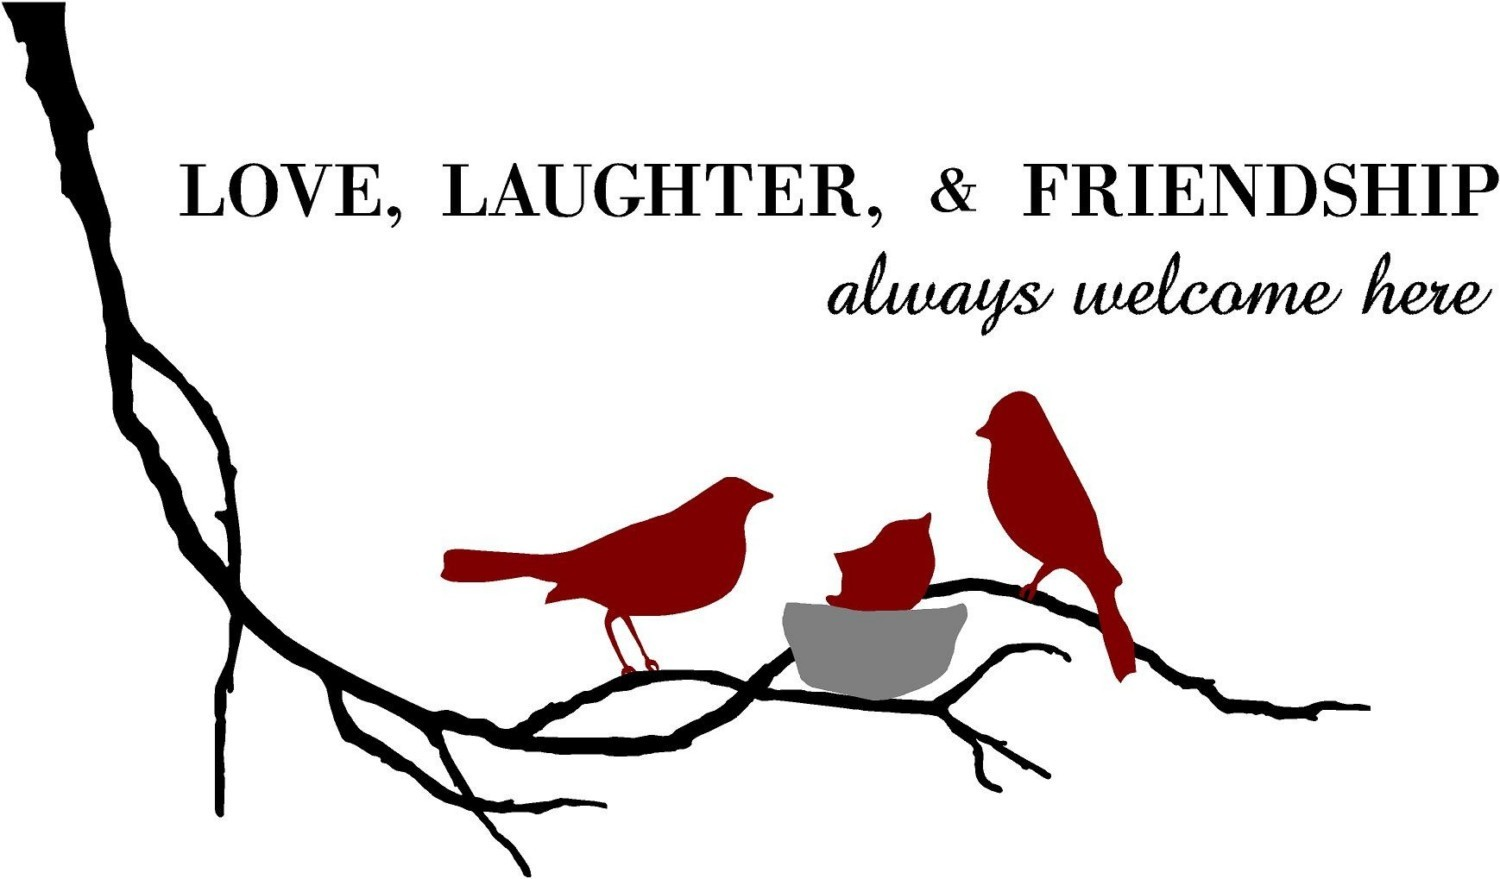 Funny Quotes About Friendship And Laughter Love Laughter And Friendship Are Always Welcome Here